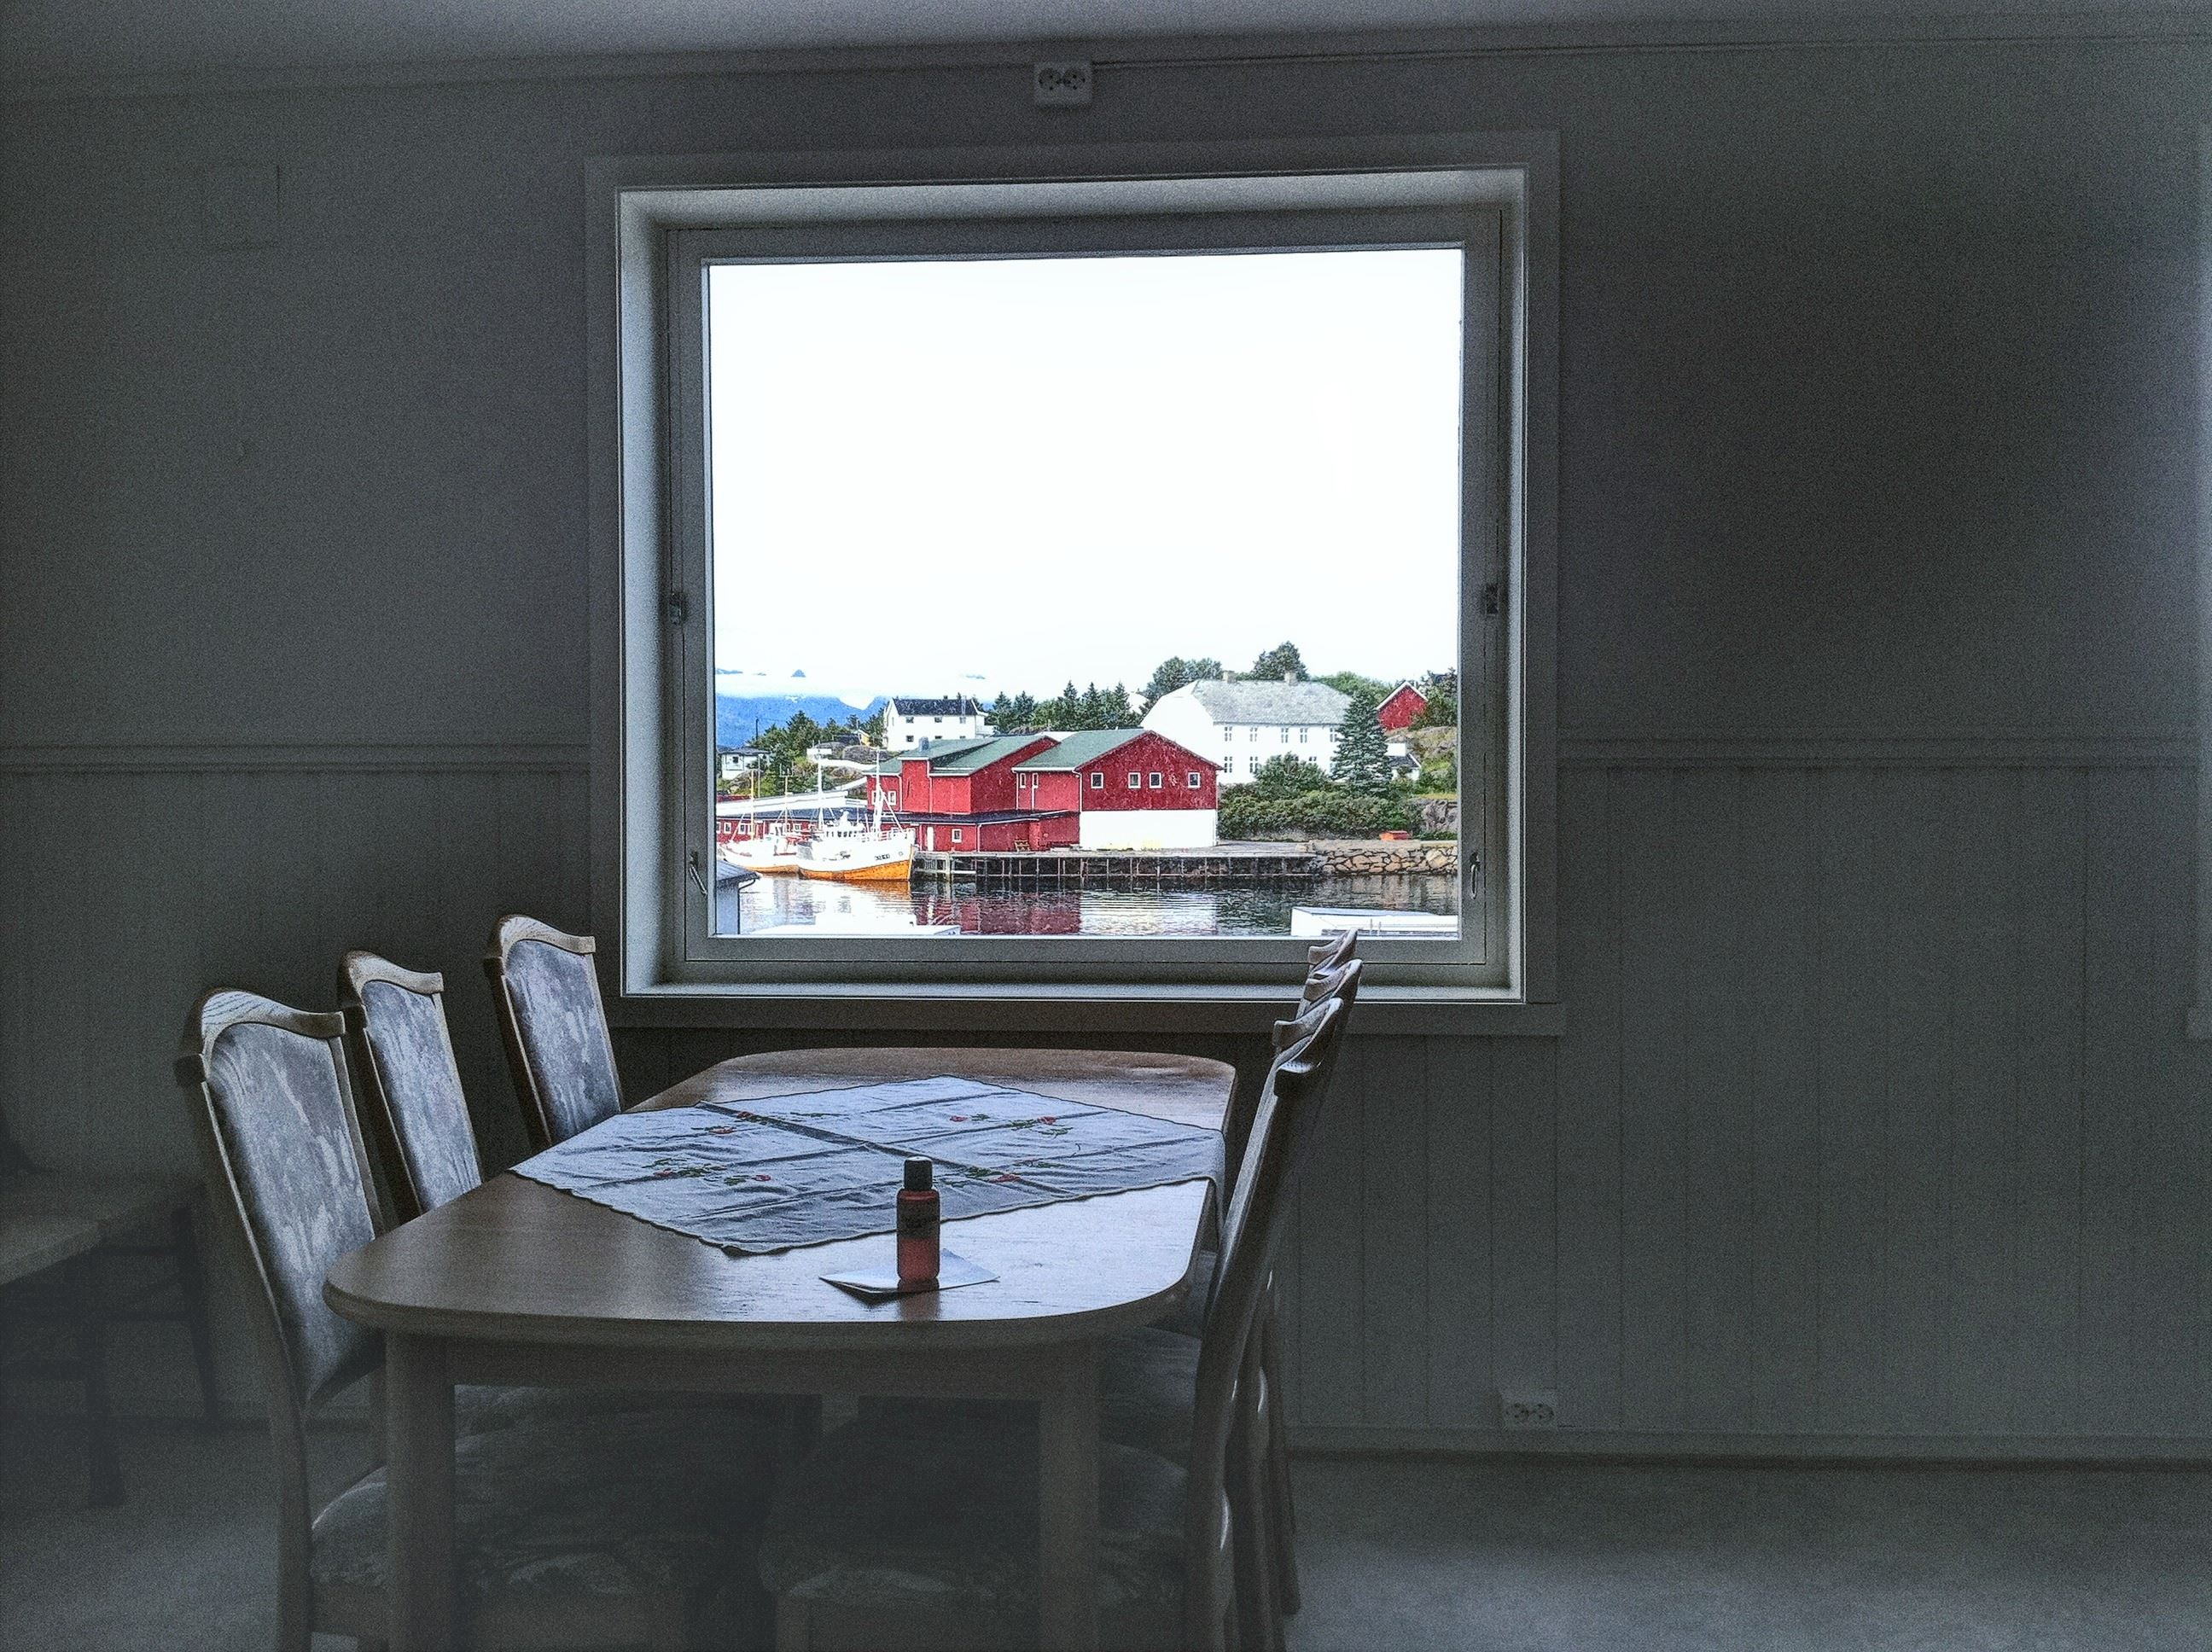 © Ballstad Apartments, Ballstad Apartments